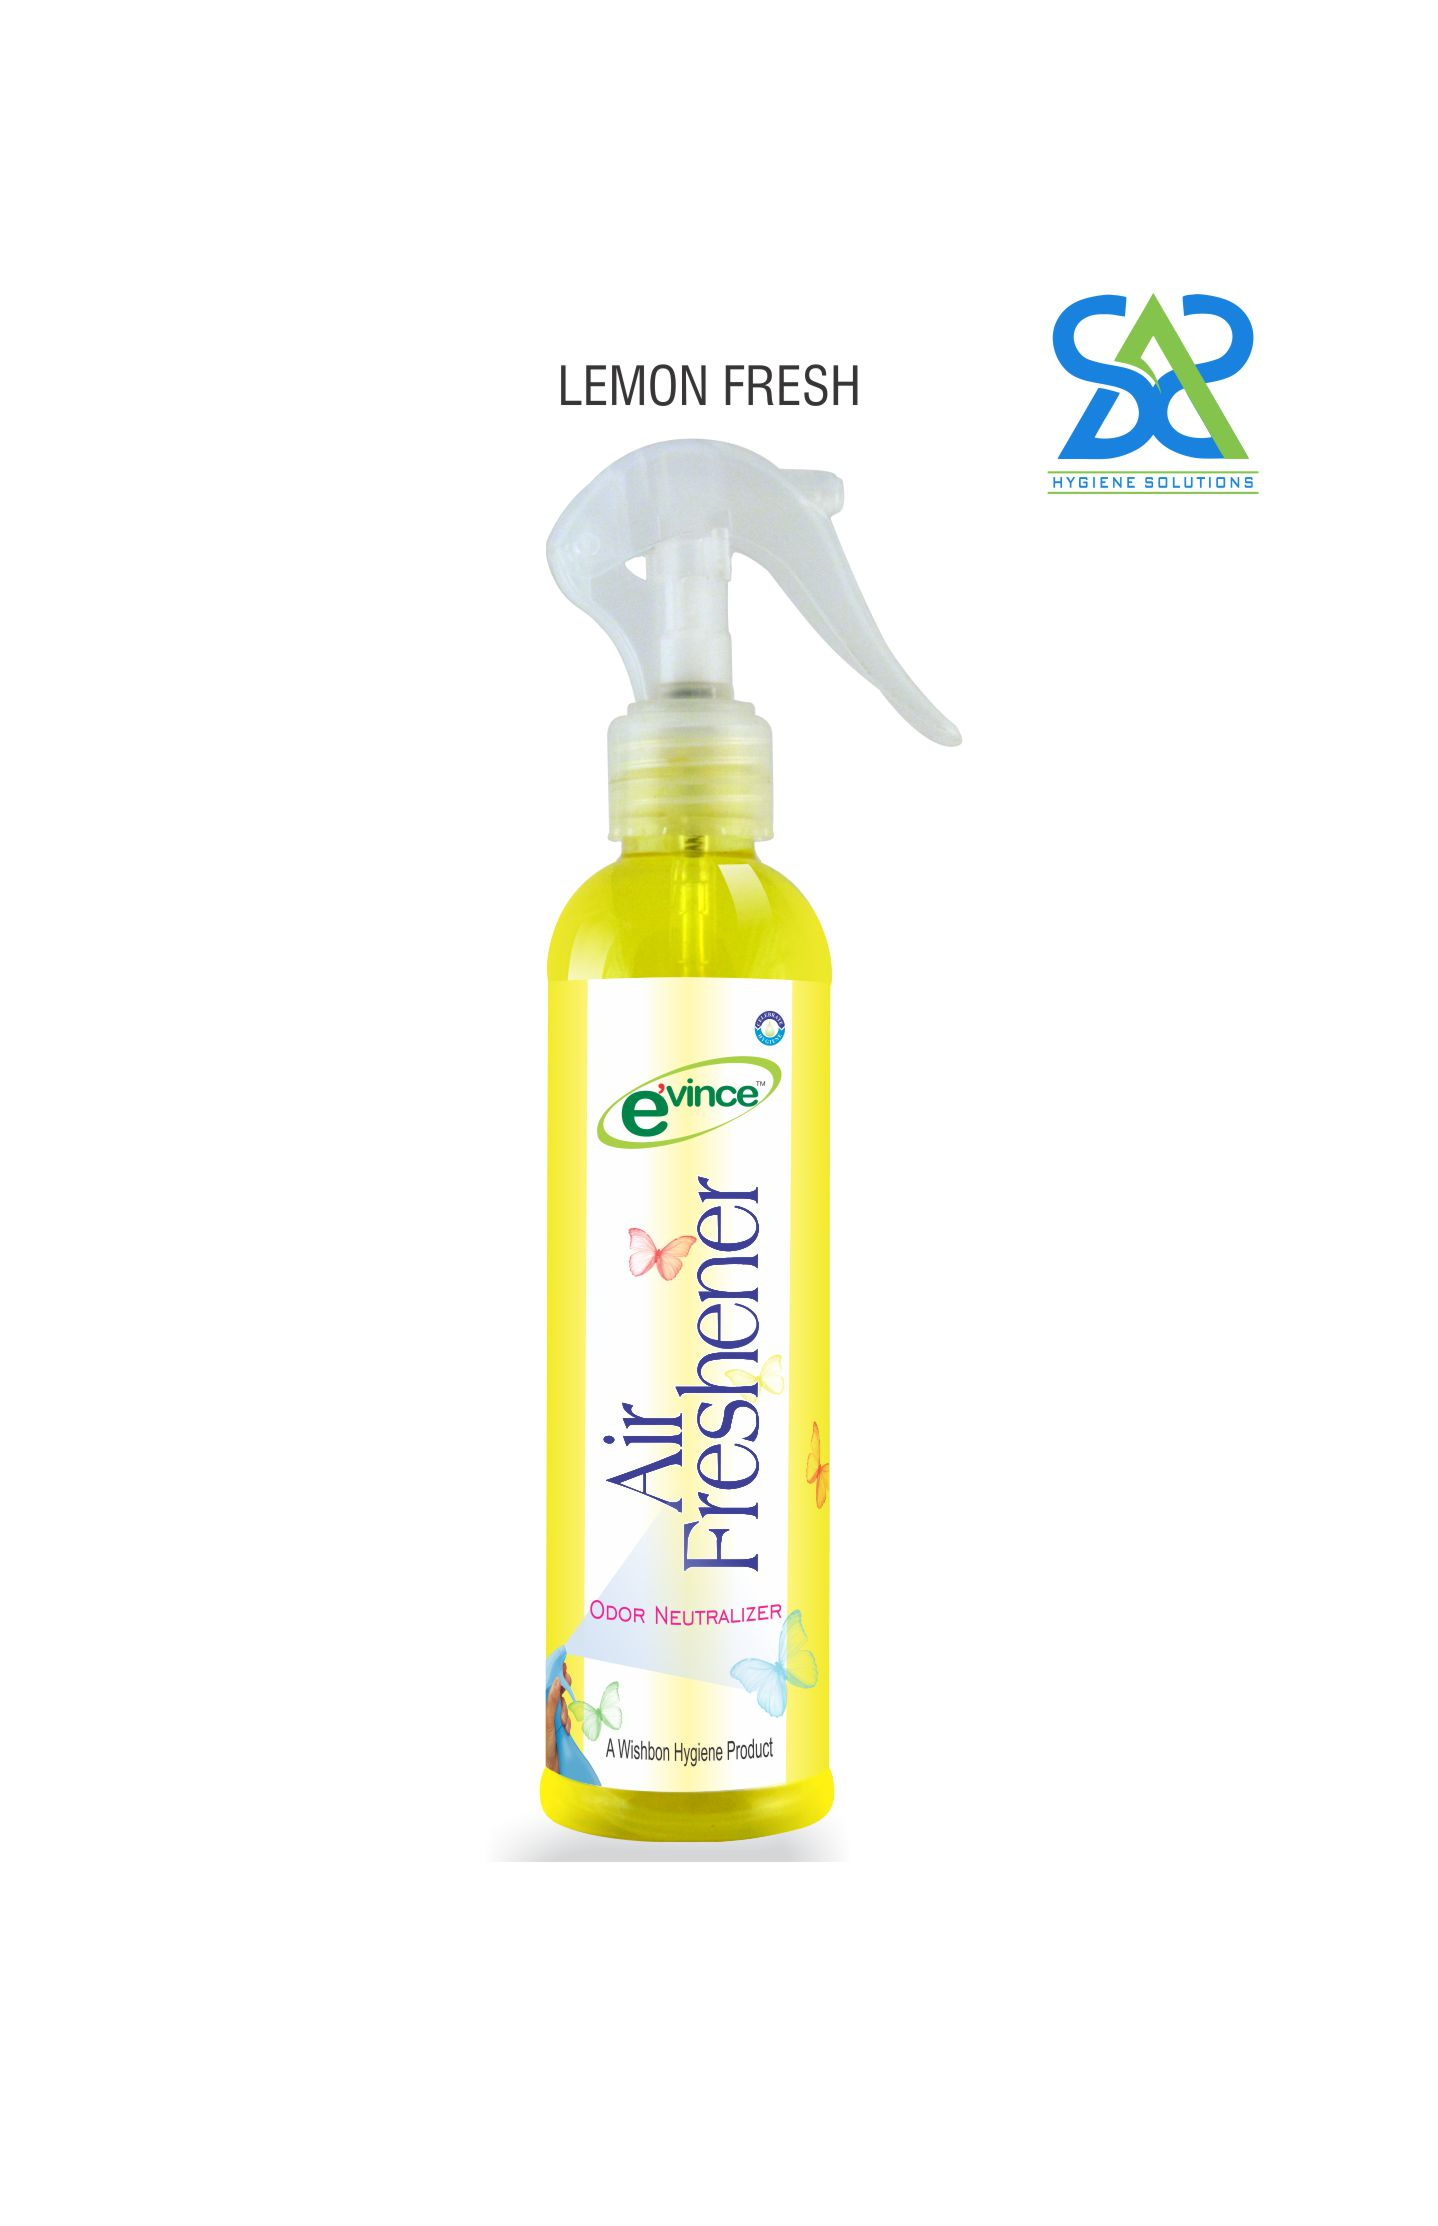 Evince Air Freshener - Lemon Fresh, 250ml